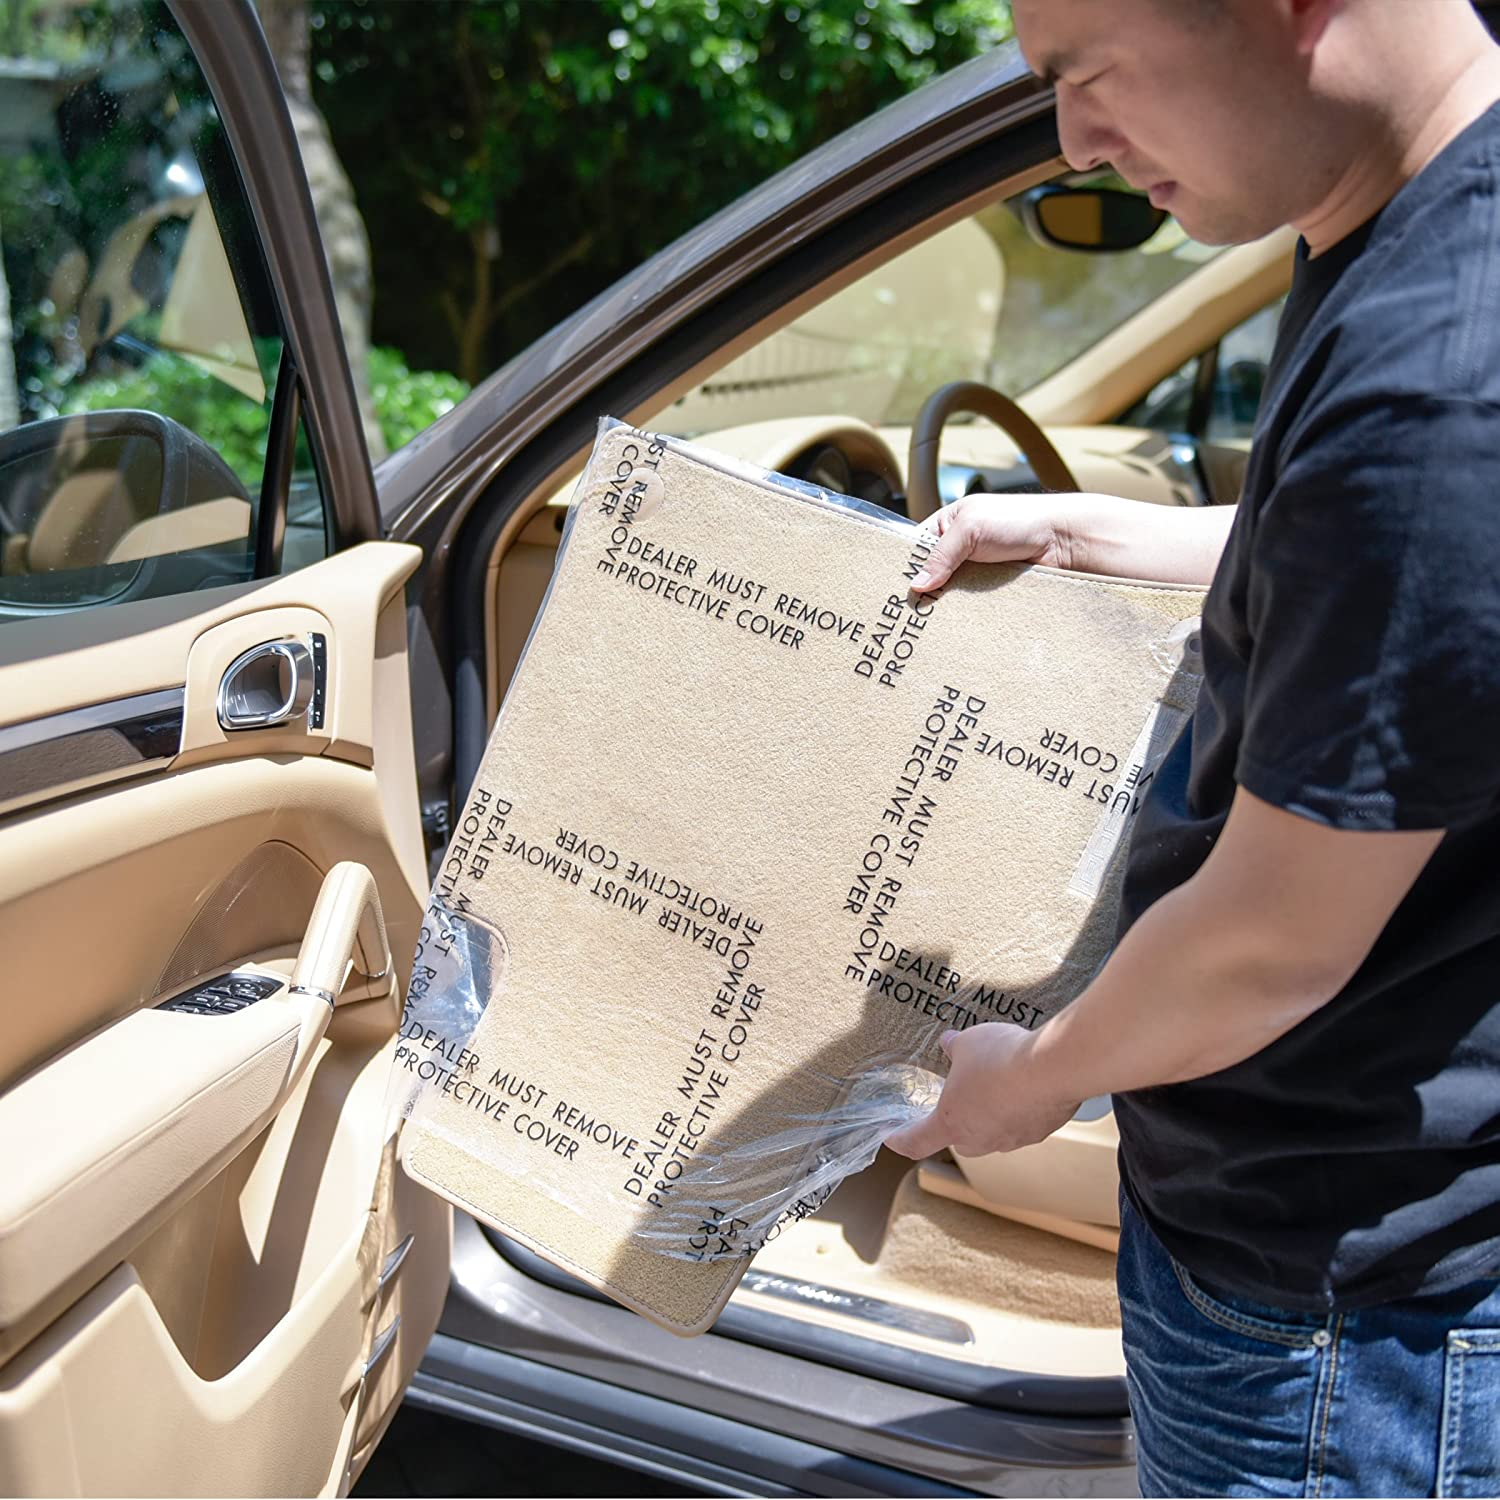 The Best Auto Adhesive Floor Mats In 2018: Reviews & Buying Guide 4